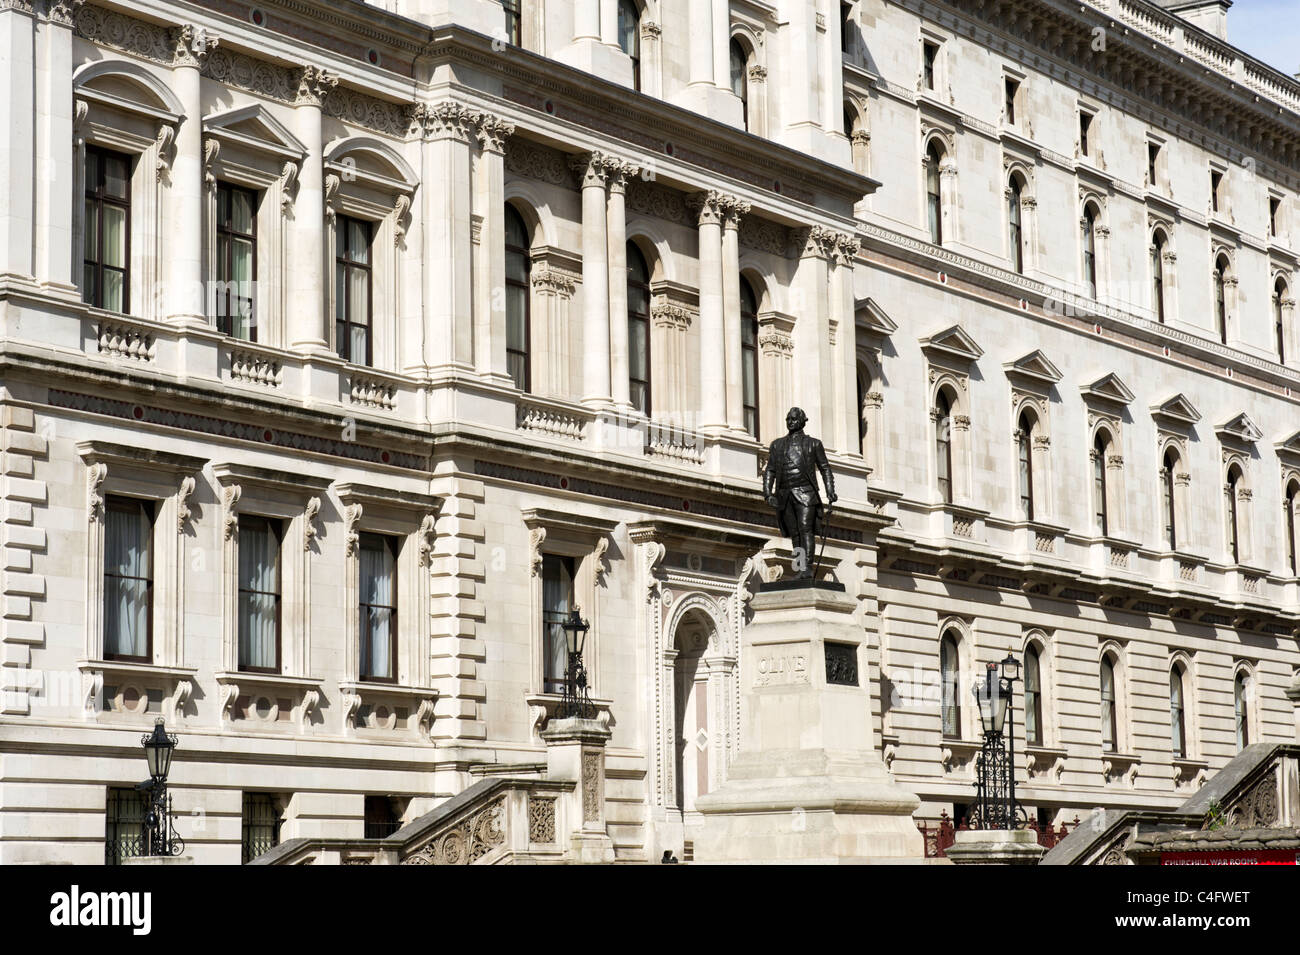 The foreign and commonwealth office london uk stock - British foreign commonwealth office ...